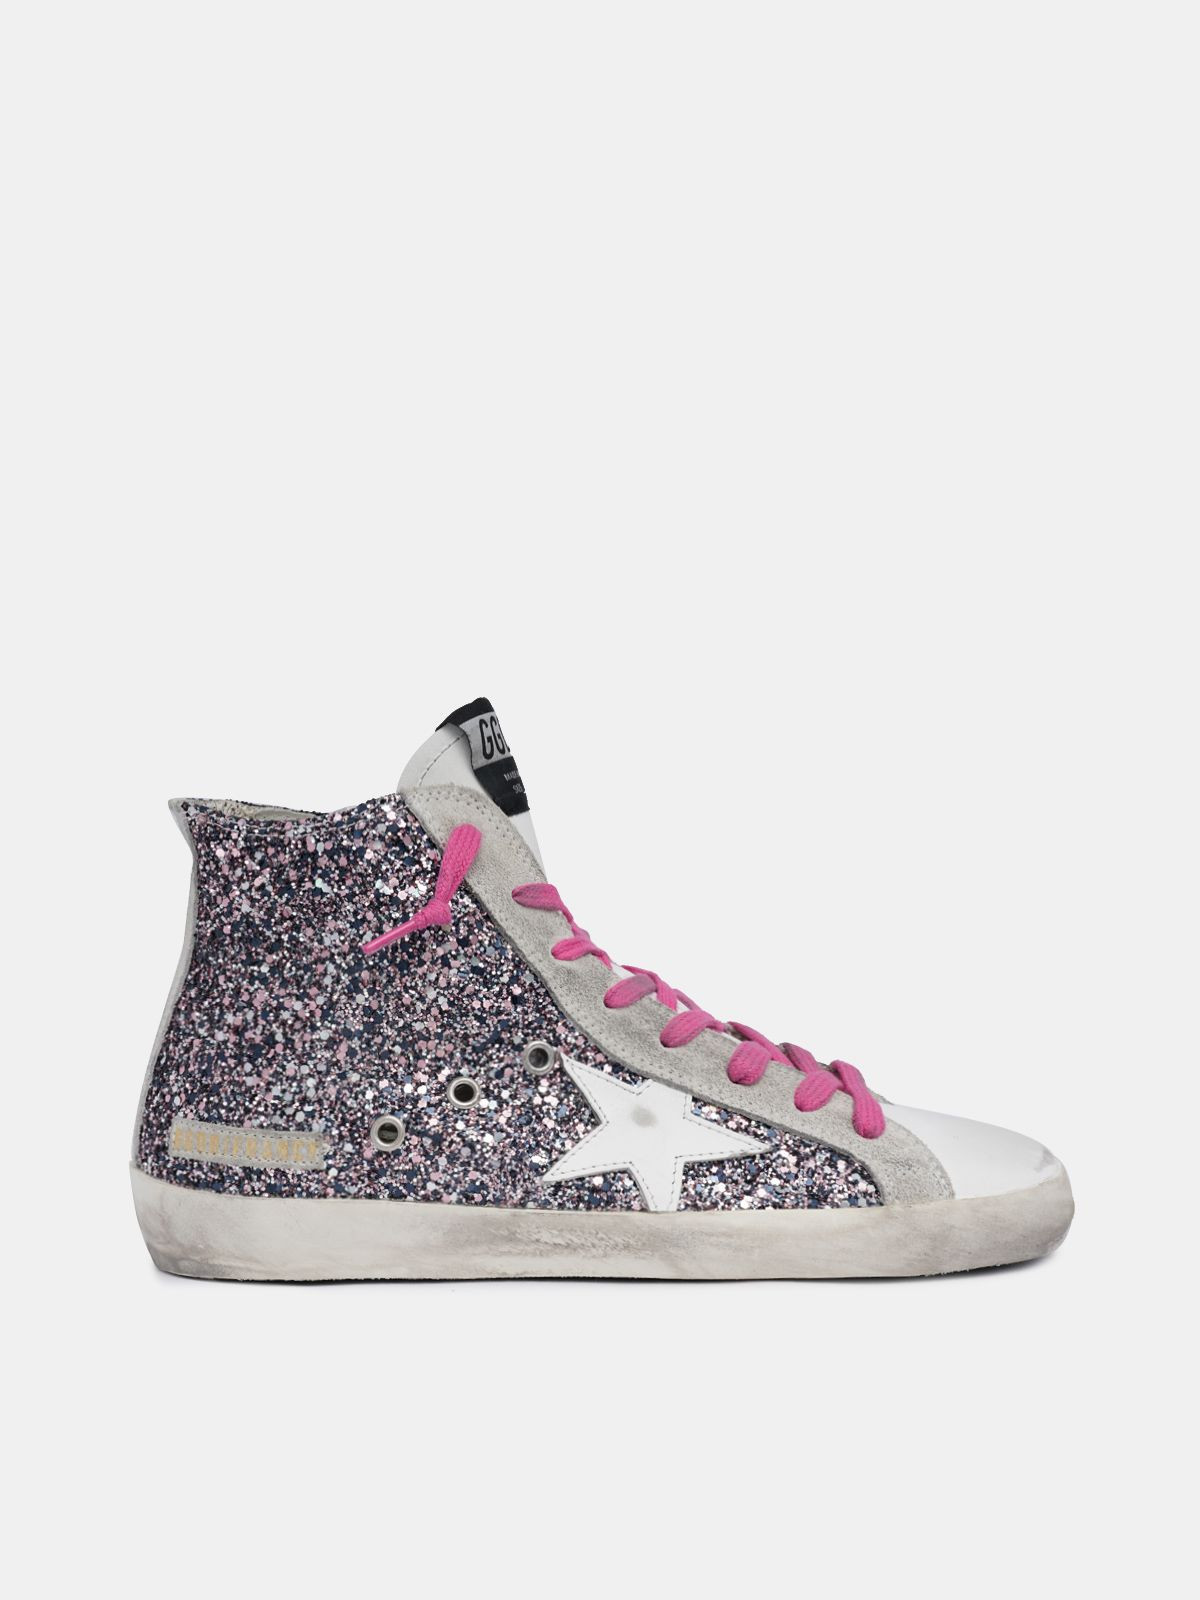 Francy sneakers with multicolour glitter and fuchsia laces